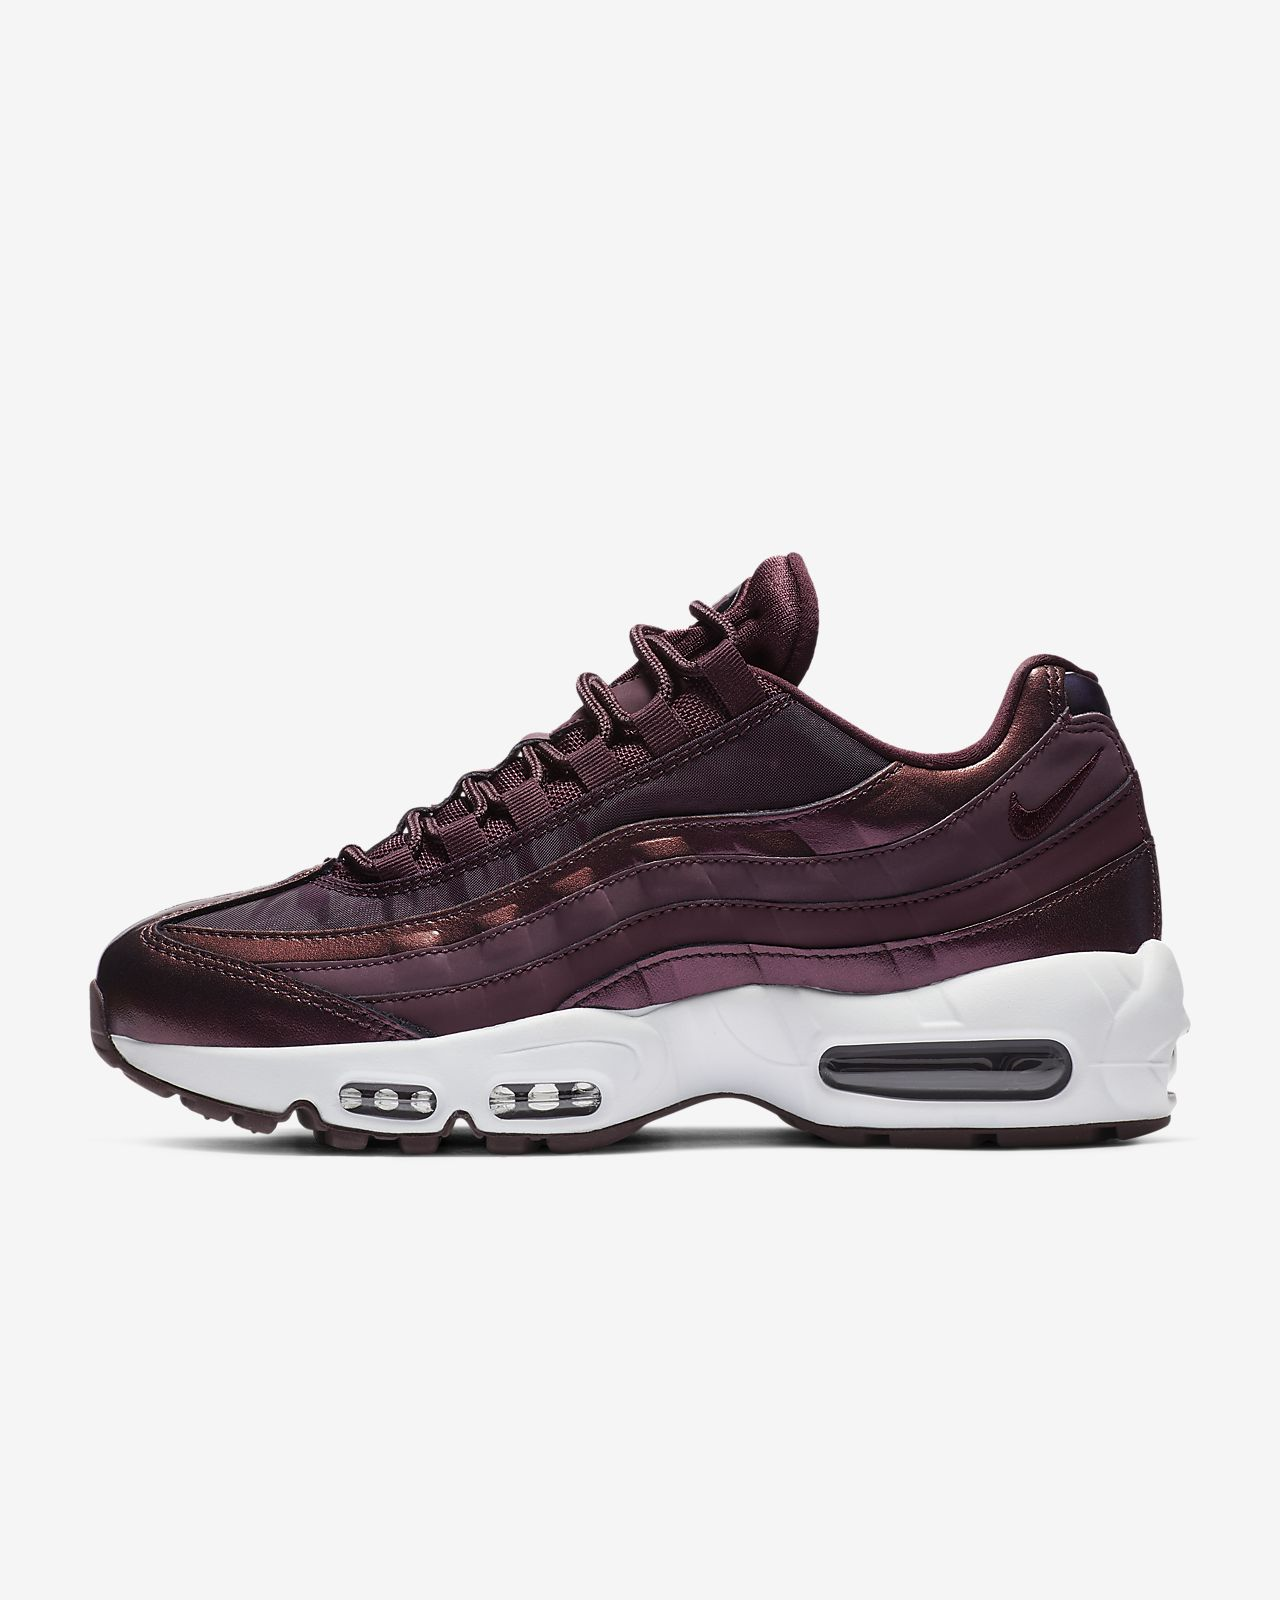 Ca Femme Lux Chaussure Nike 95 Pour Max Air xwq6AF8na1